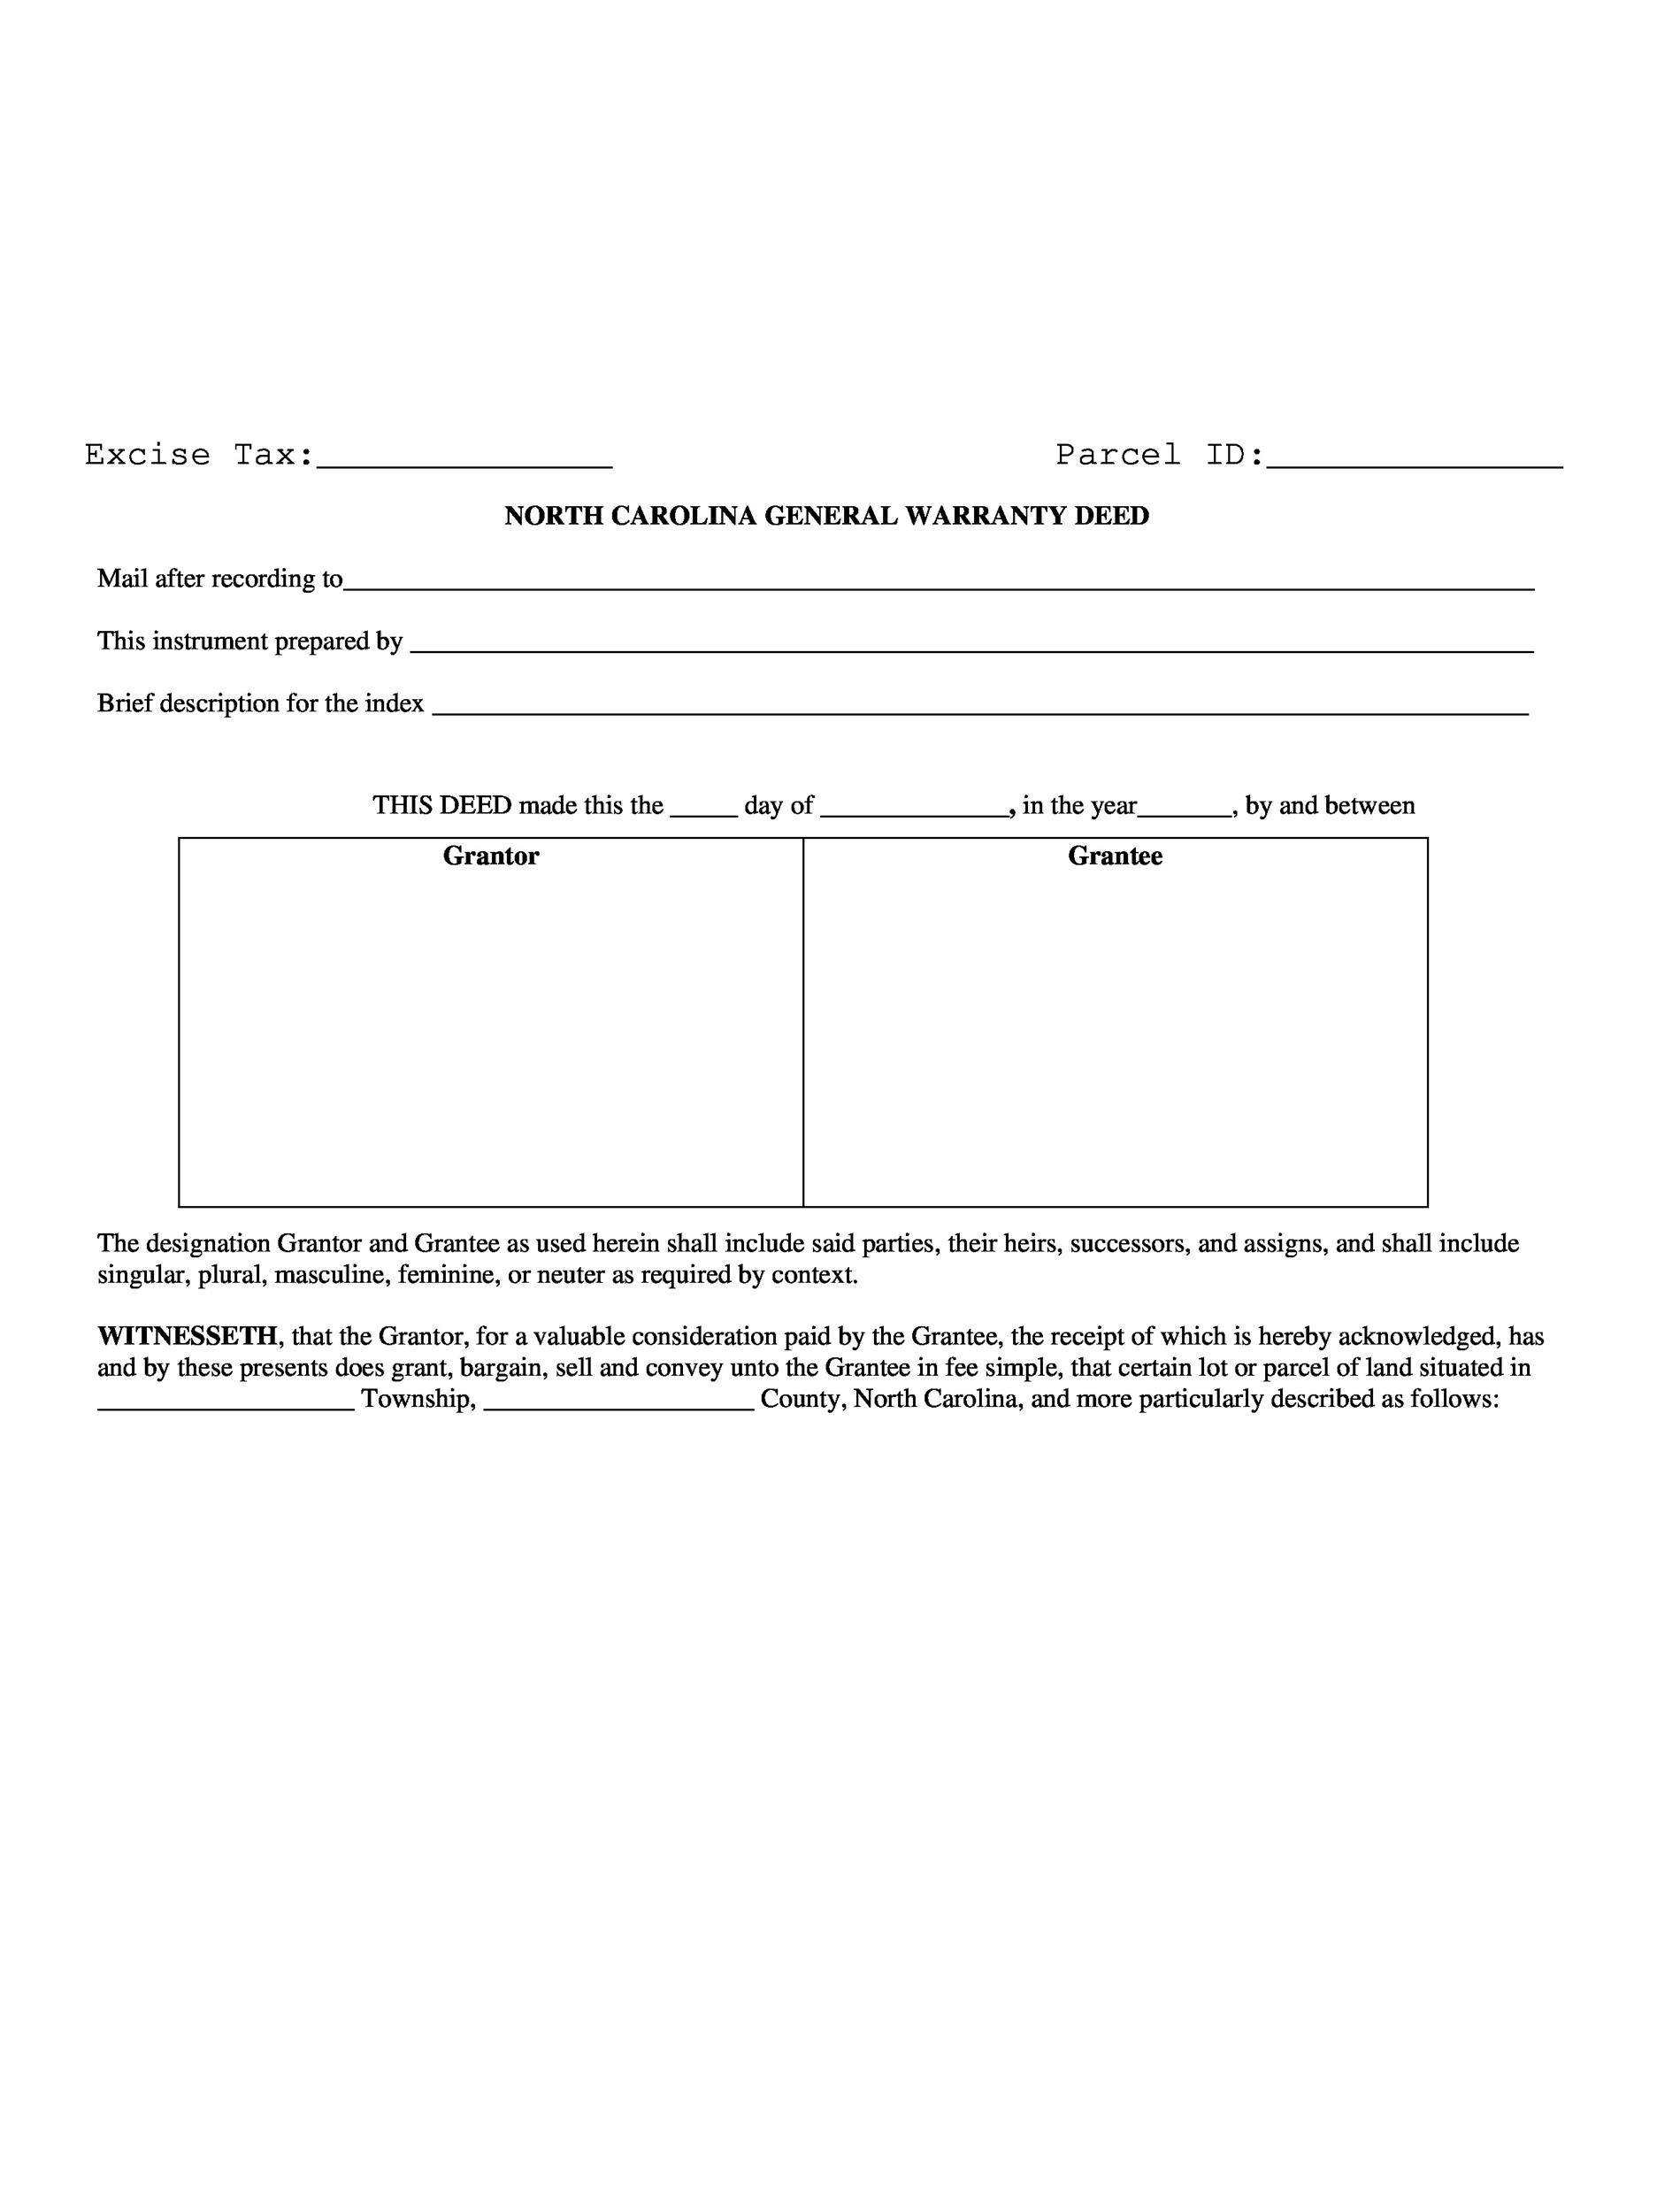 Free Warranty deed template 11